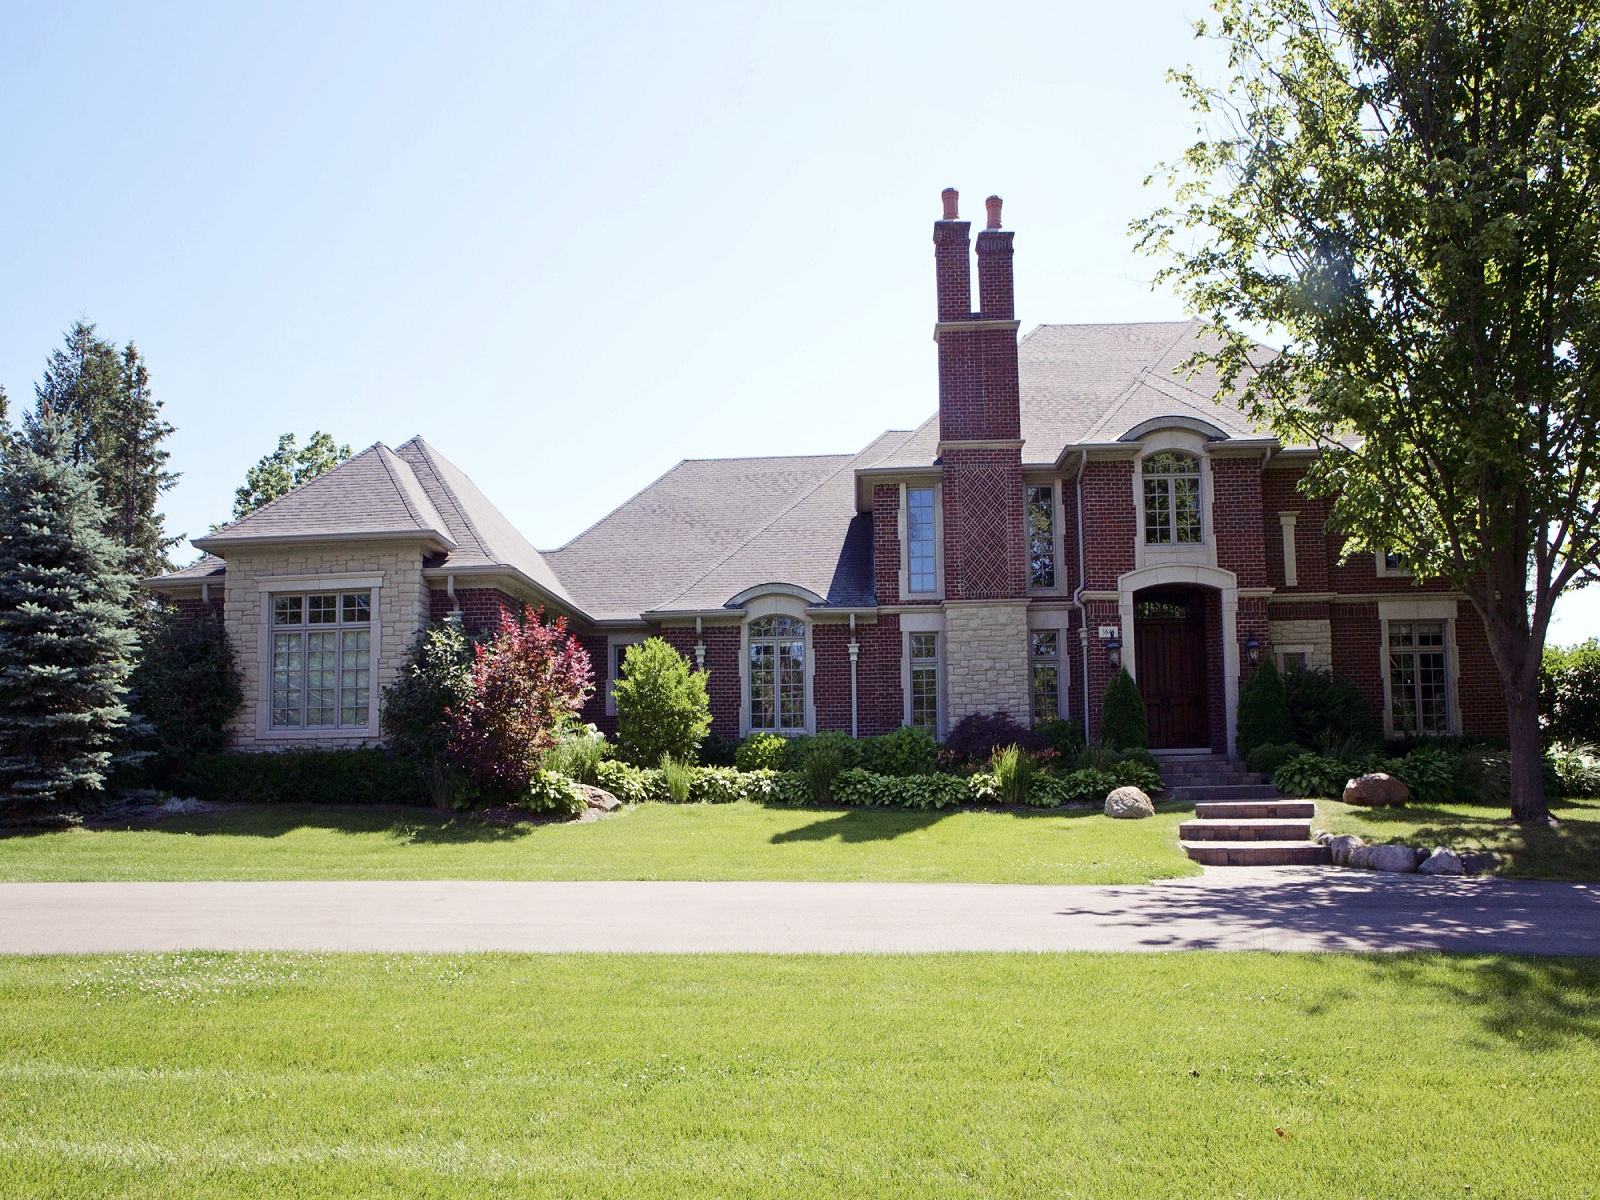 Single Family Home for Sale at Bloomfield Hills 3645 Lahser Road Bloomfield Hills, Michigan, 48304 United States